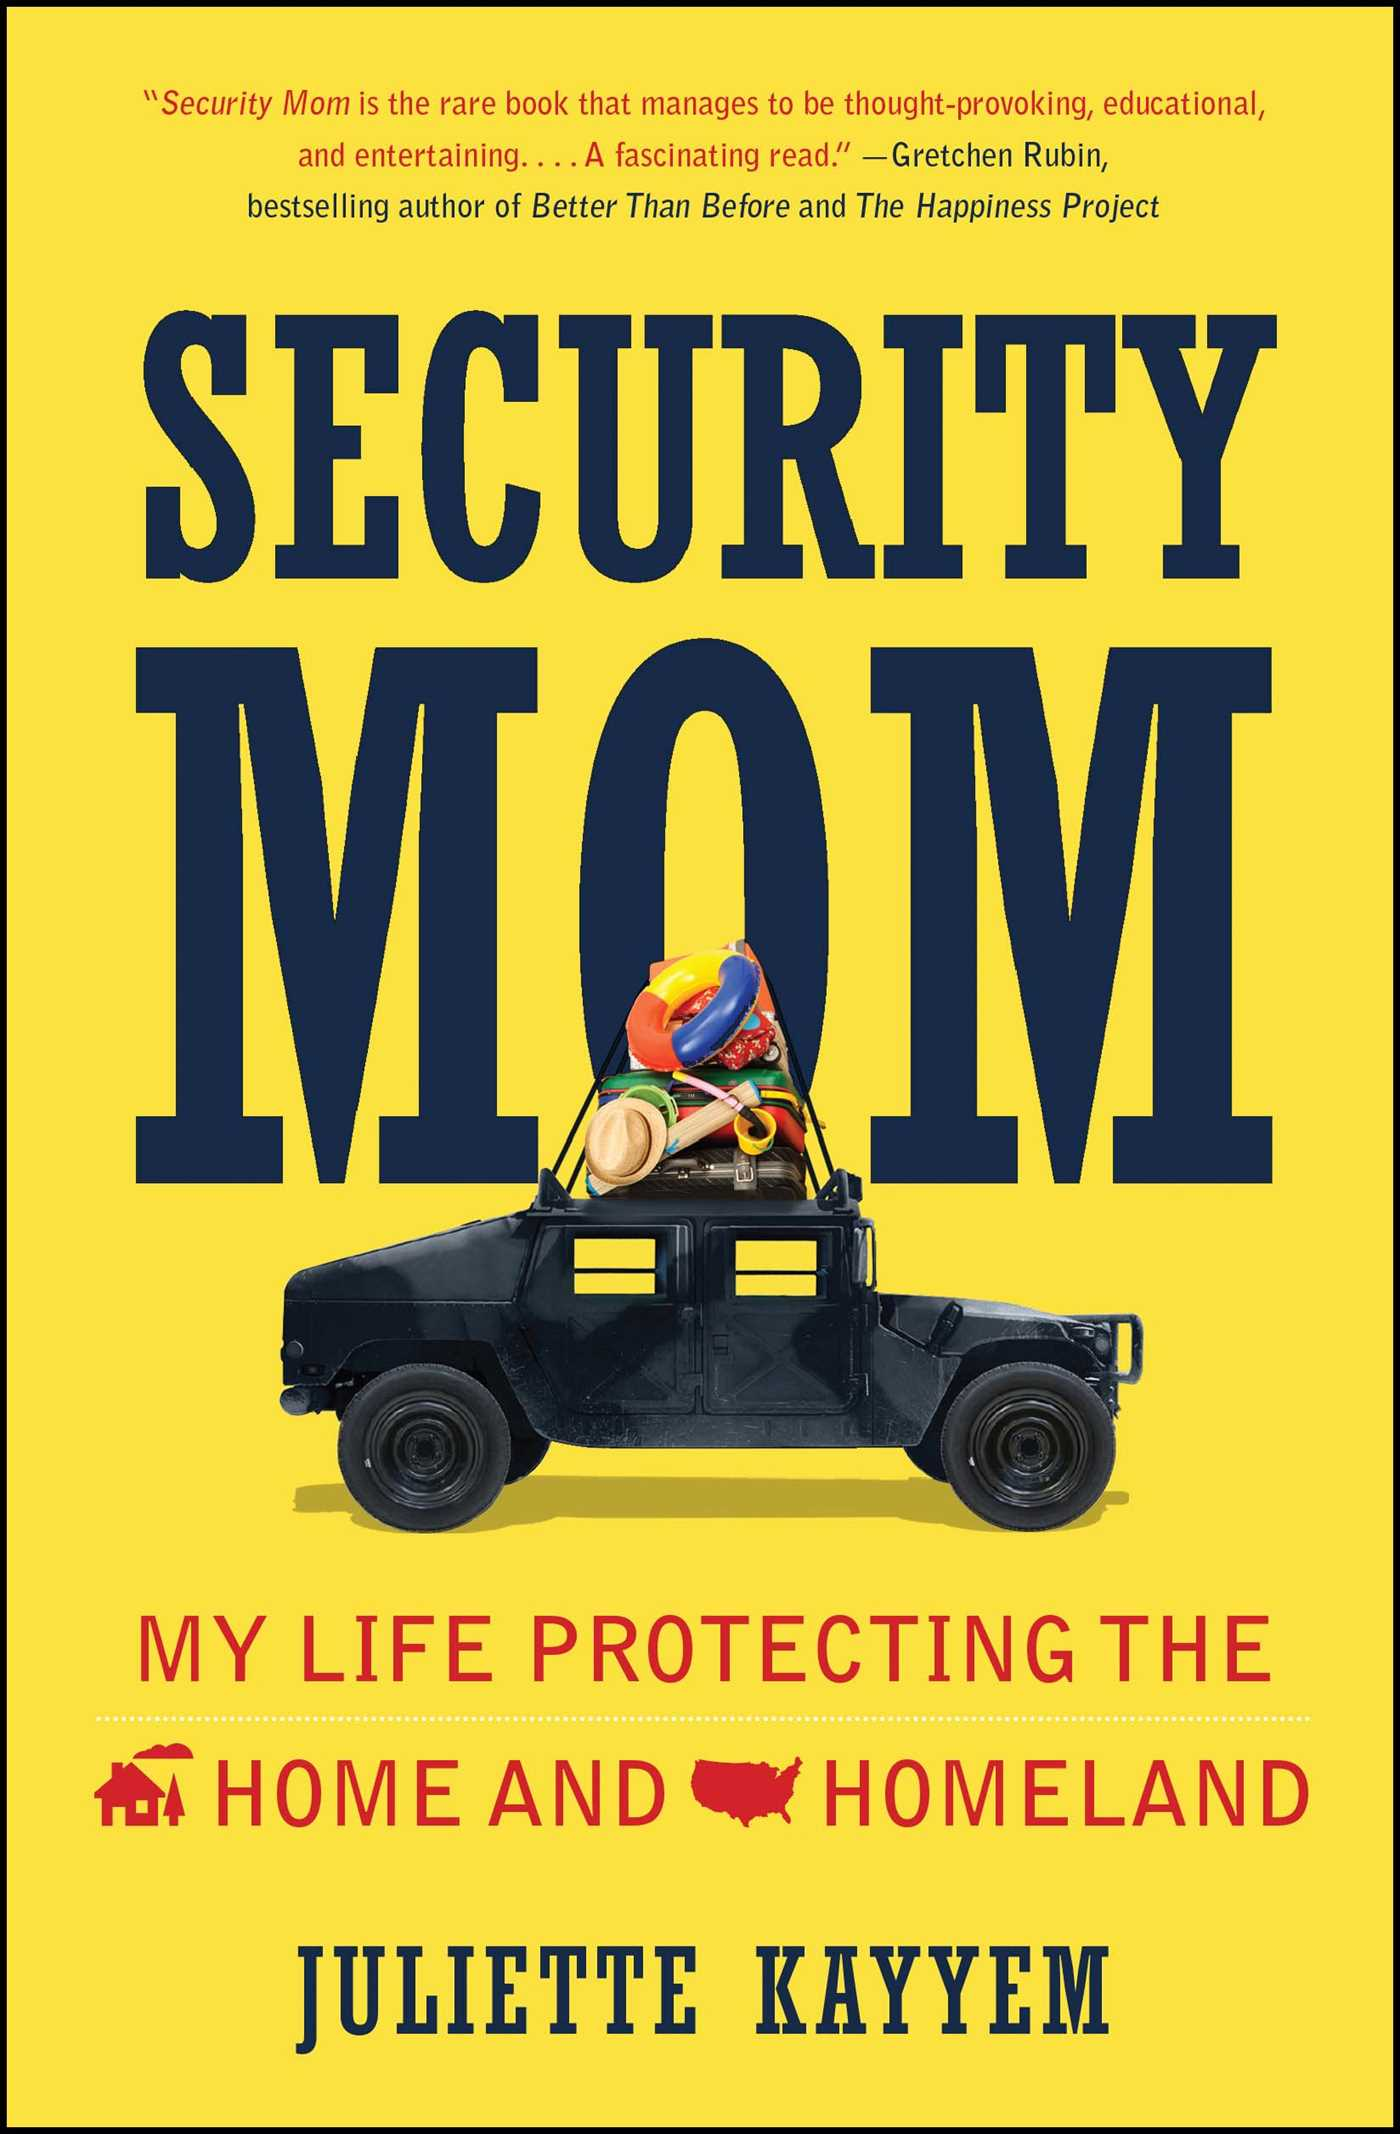 Homeland security ebook array security mom ebook by juliette kayyem official publisher page rh simonandschuster com fandeluxe Choice Image